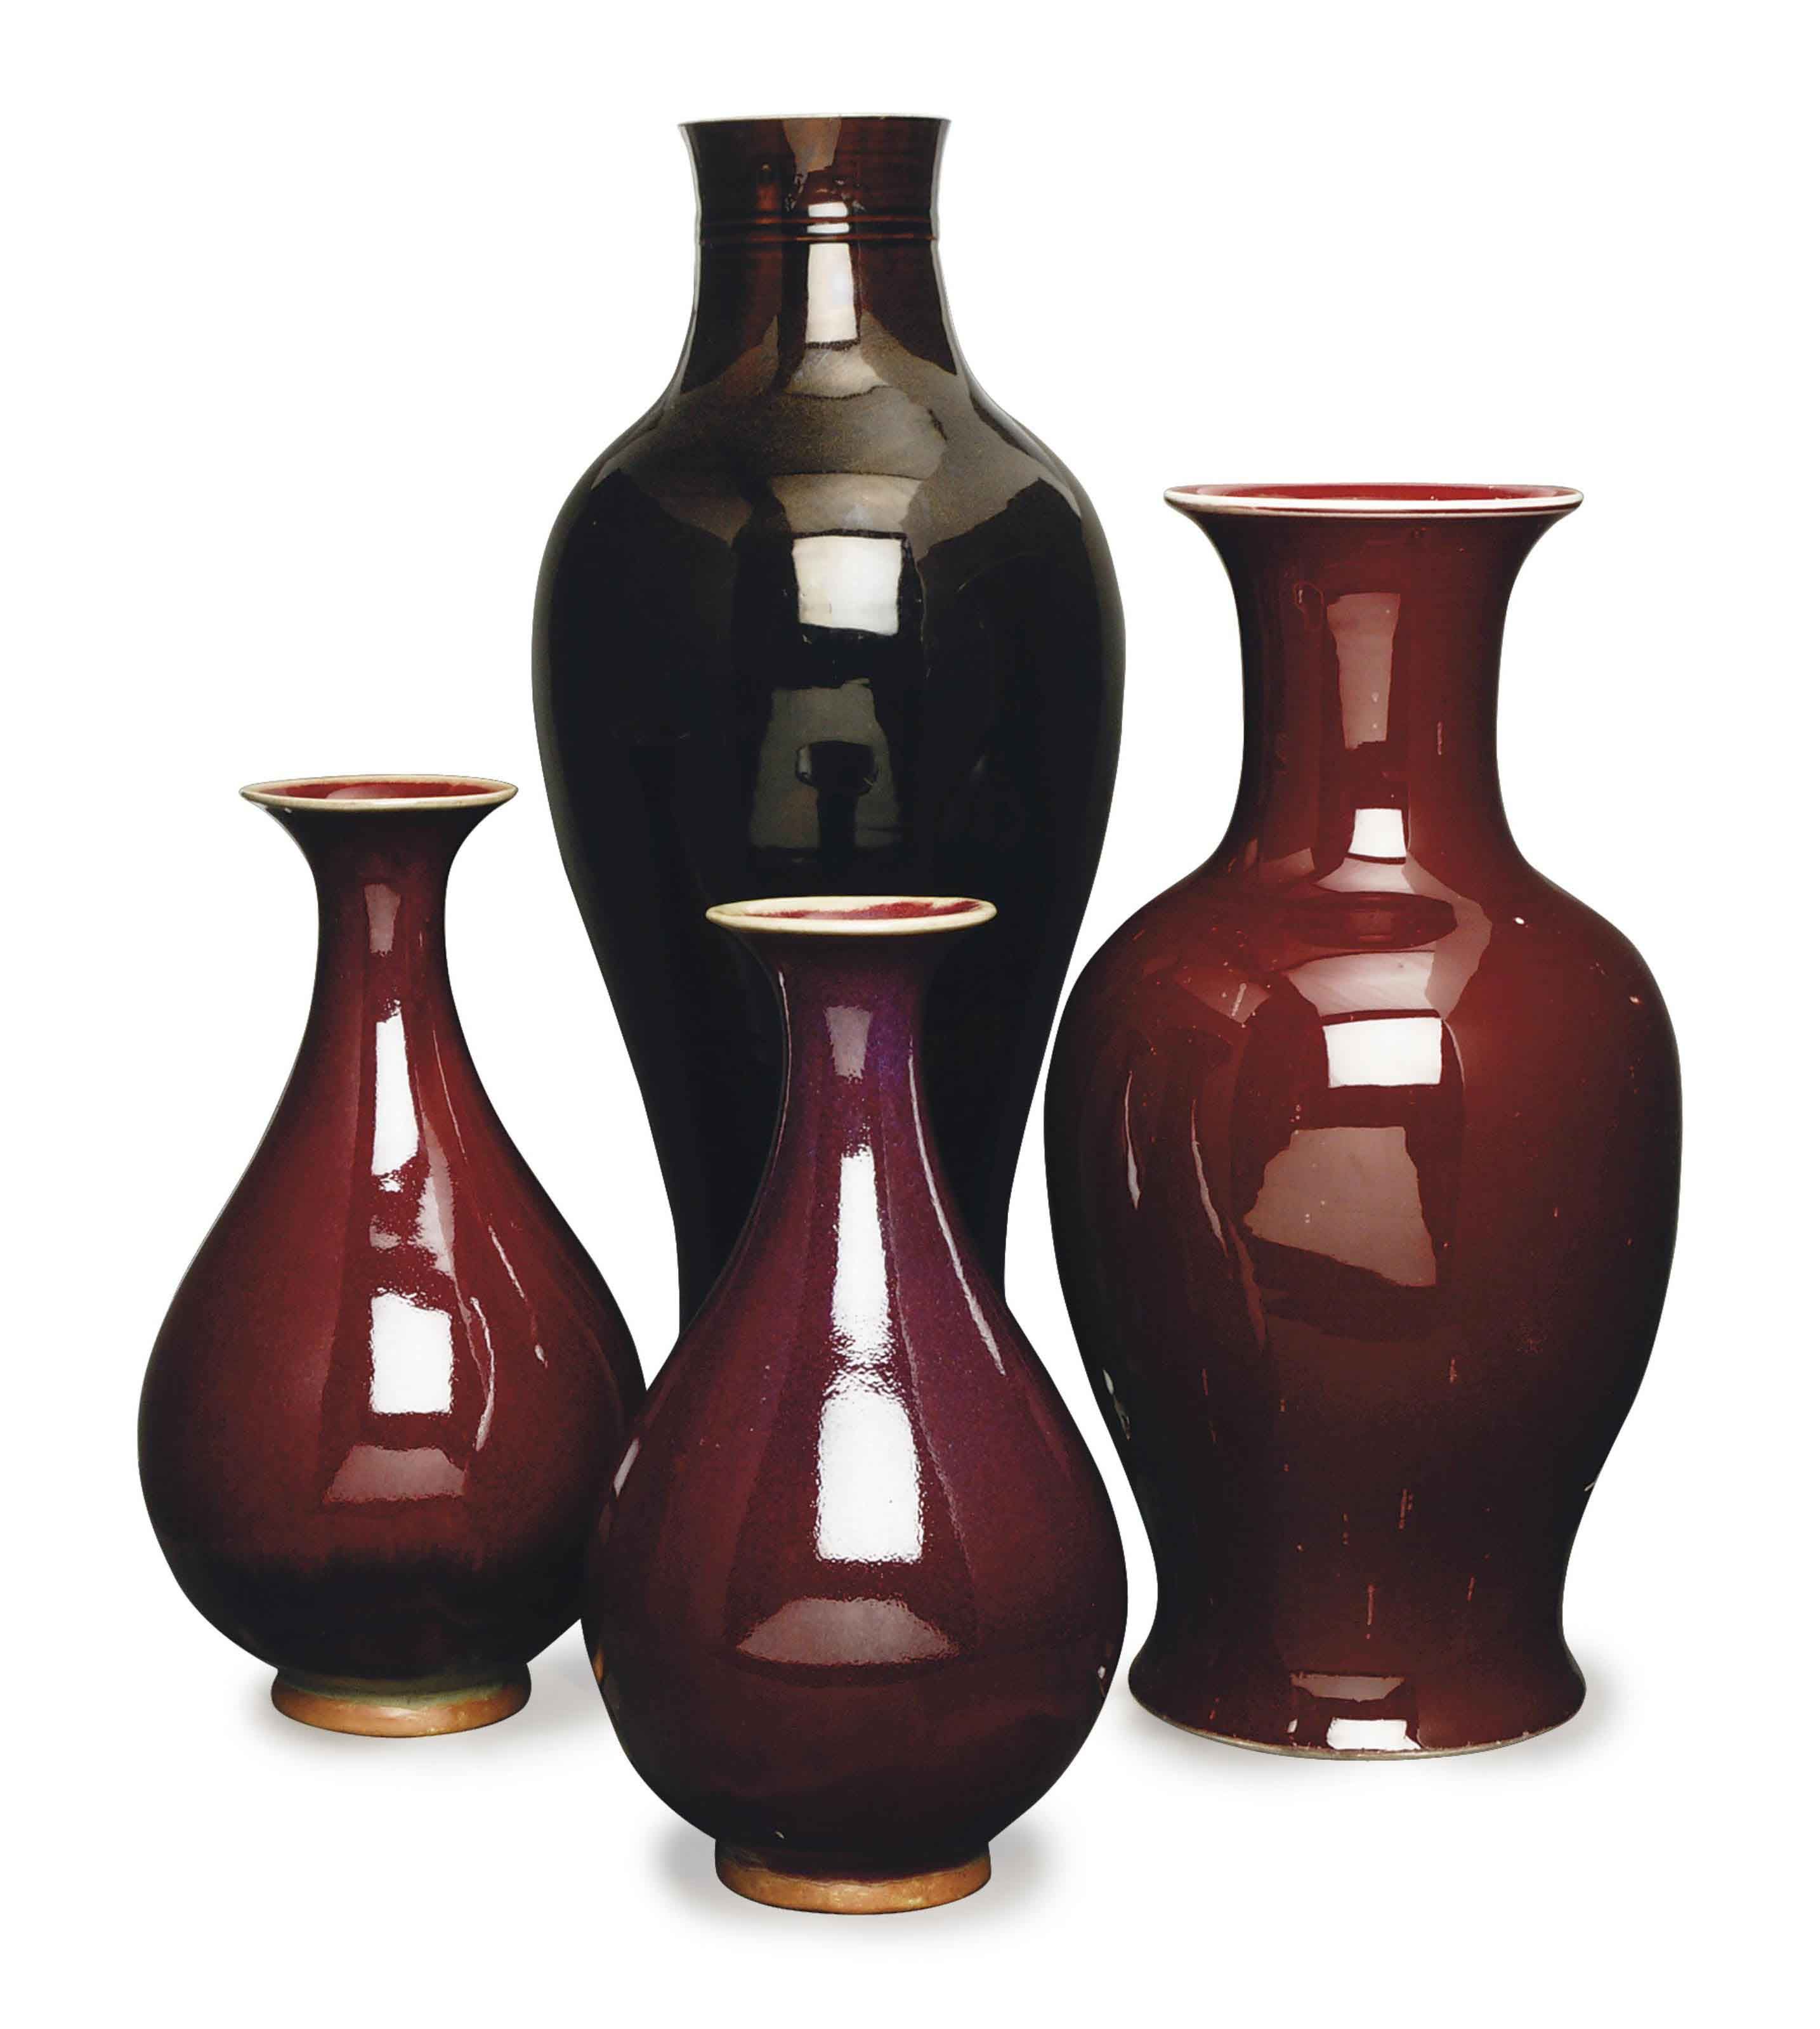 A CHINESE RED GLAZED VASE, AND A PAIR OF FLAMBE GLAZED VASES,